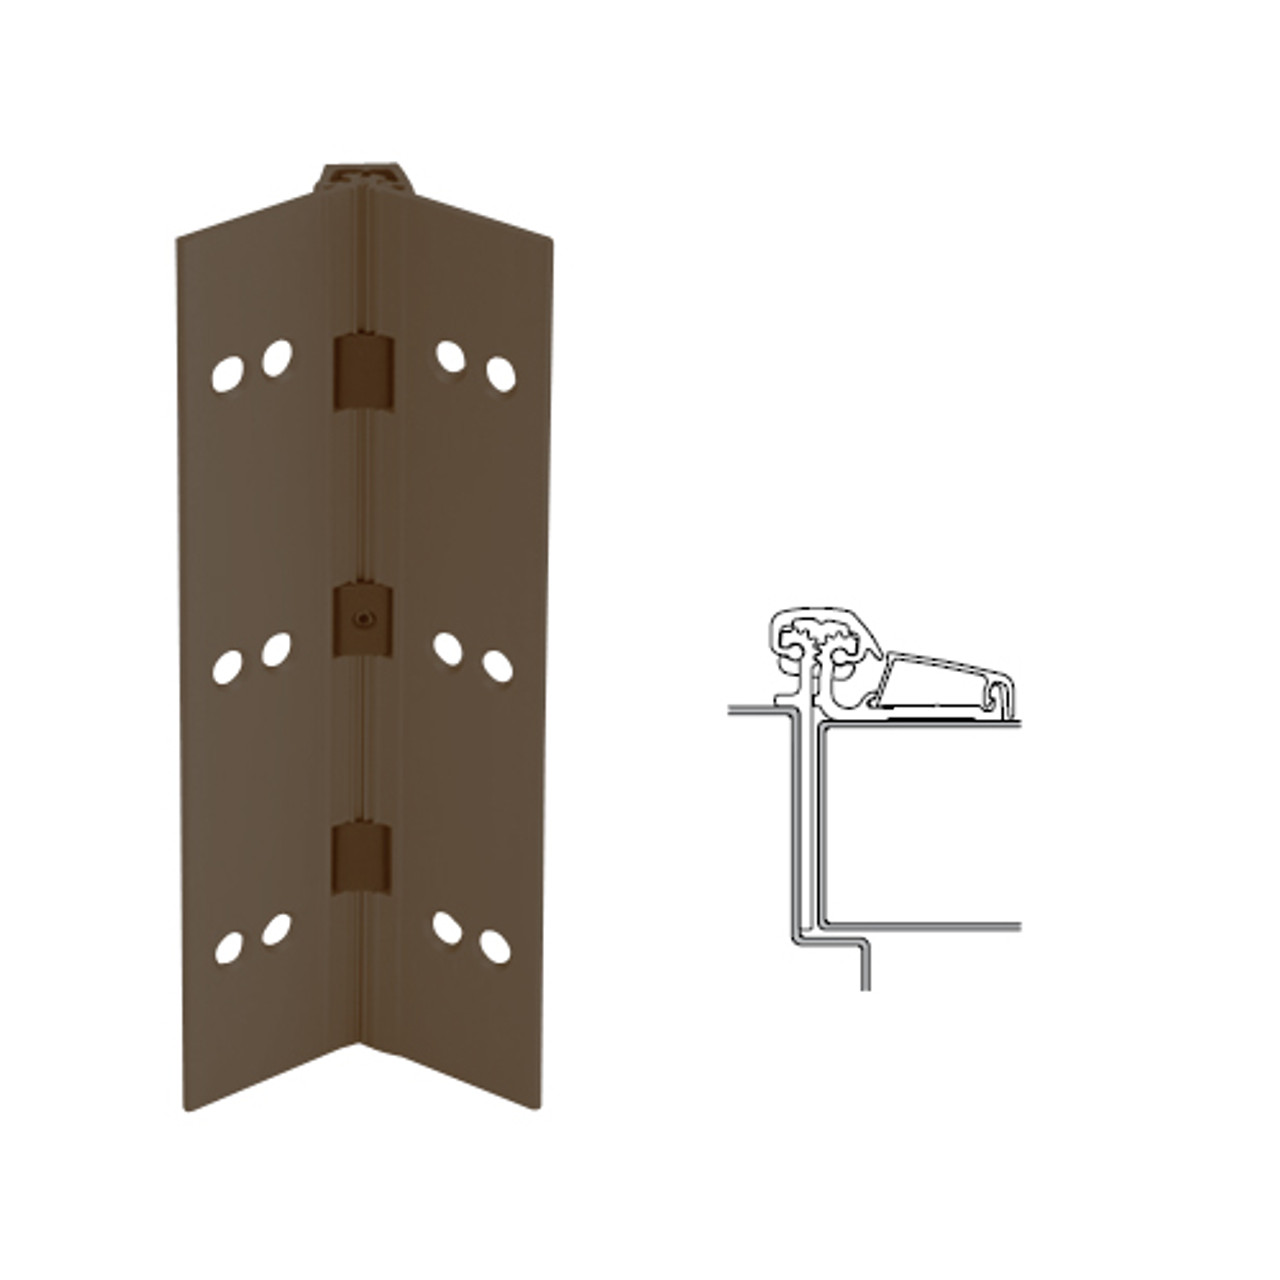 054XY-313AN-95 IVES Adjustable Half Surface Continuous Geared Hinges in Dark Bronze Anodized